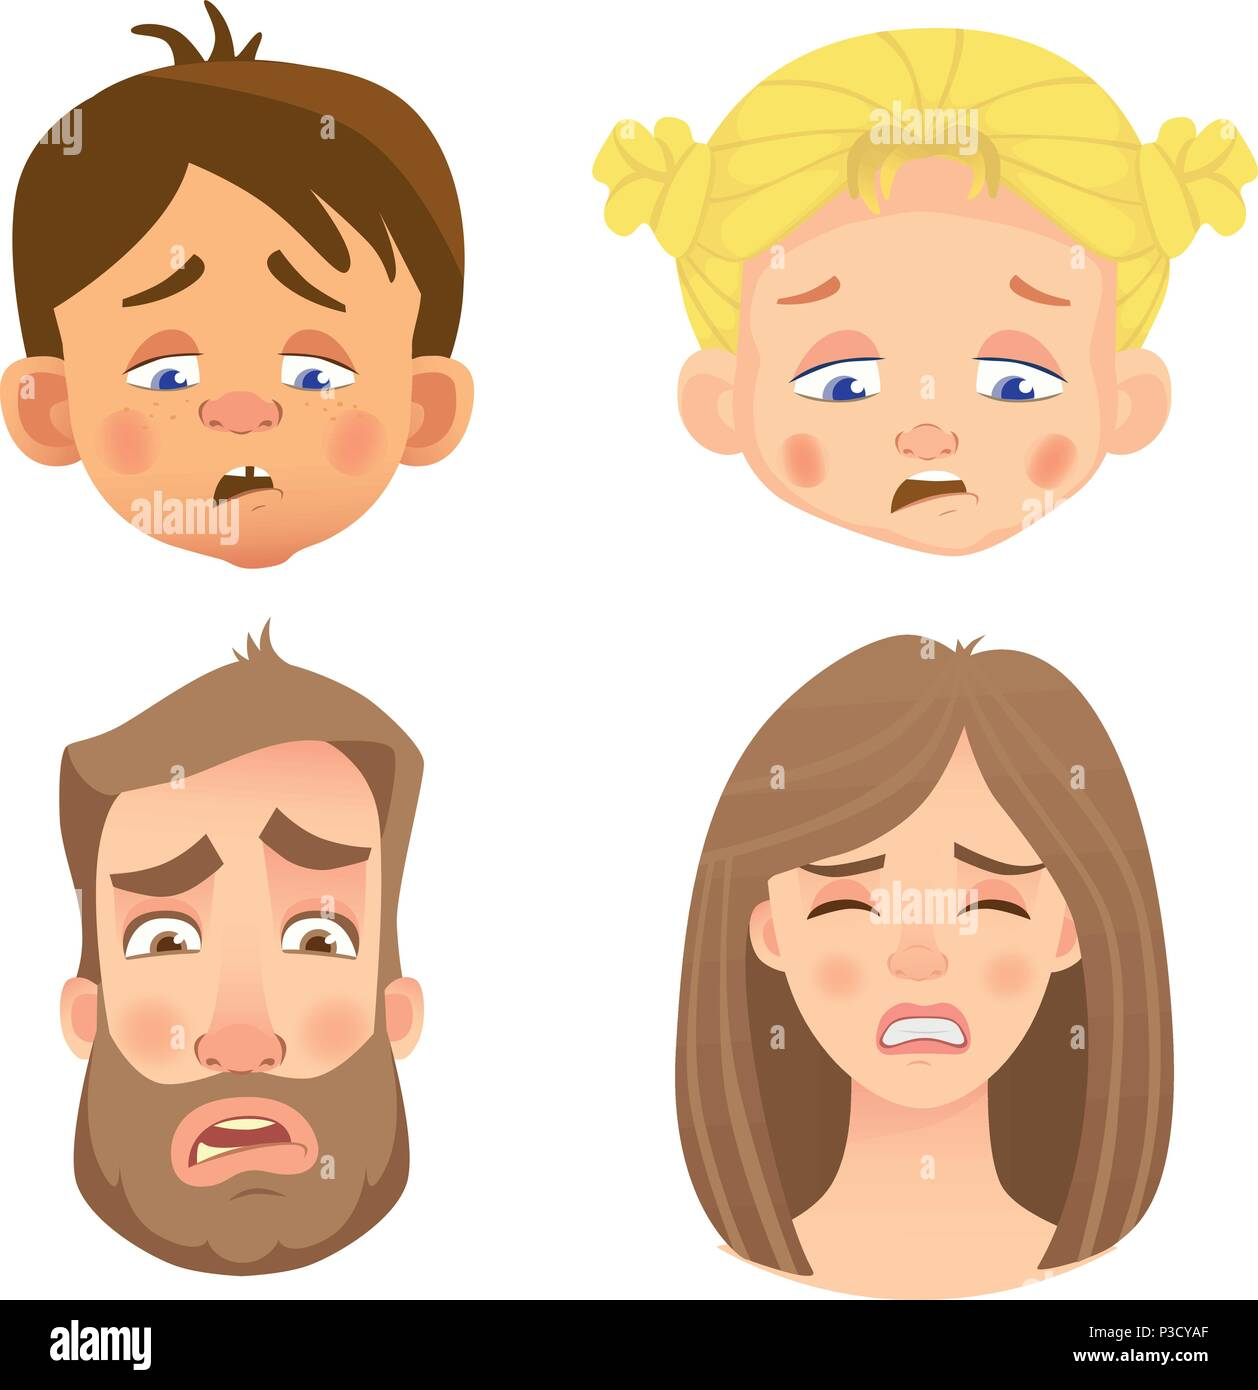 Emotions of human face. Set of human faces expressing emotions. Vector illustration - Stock Vector